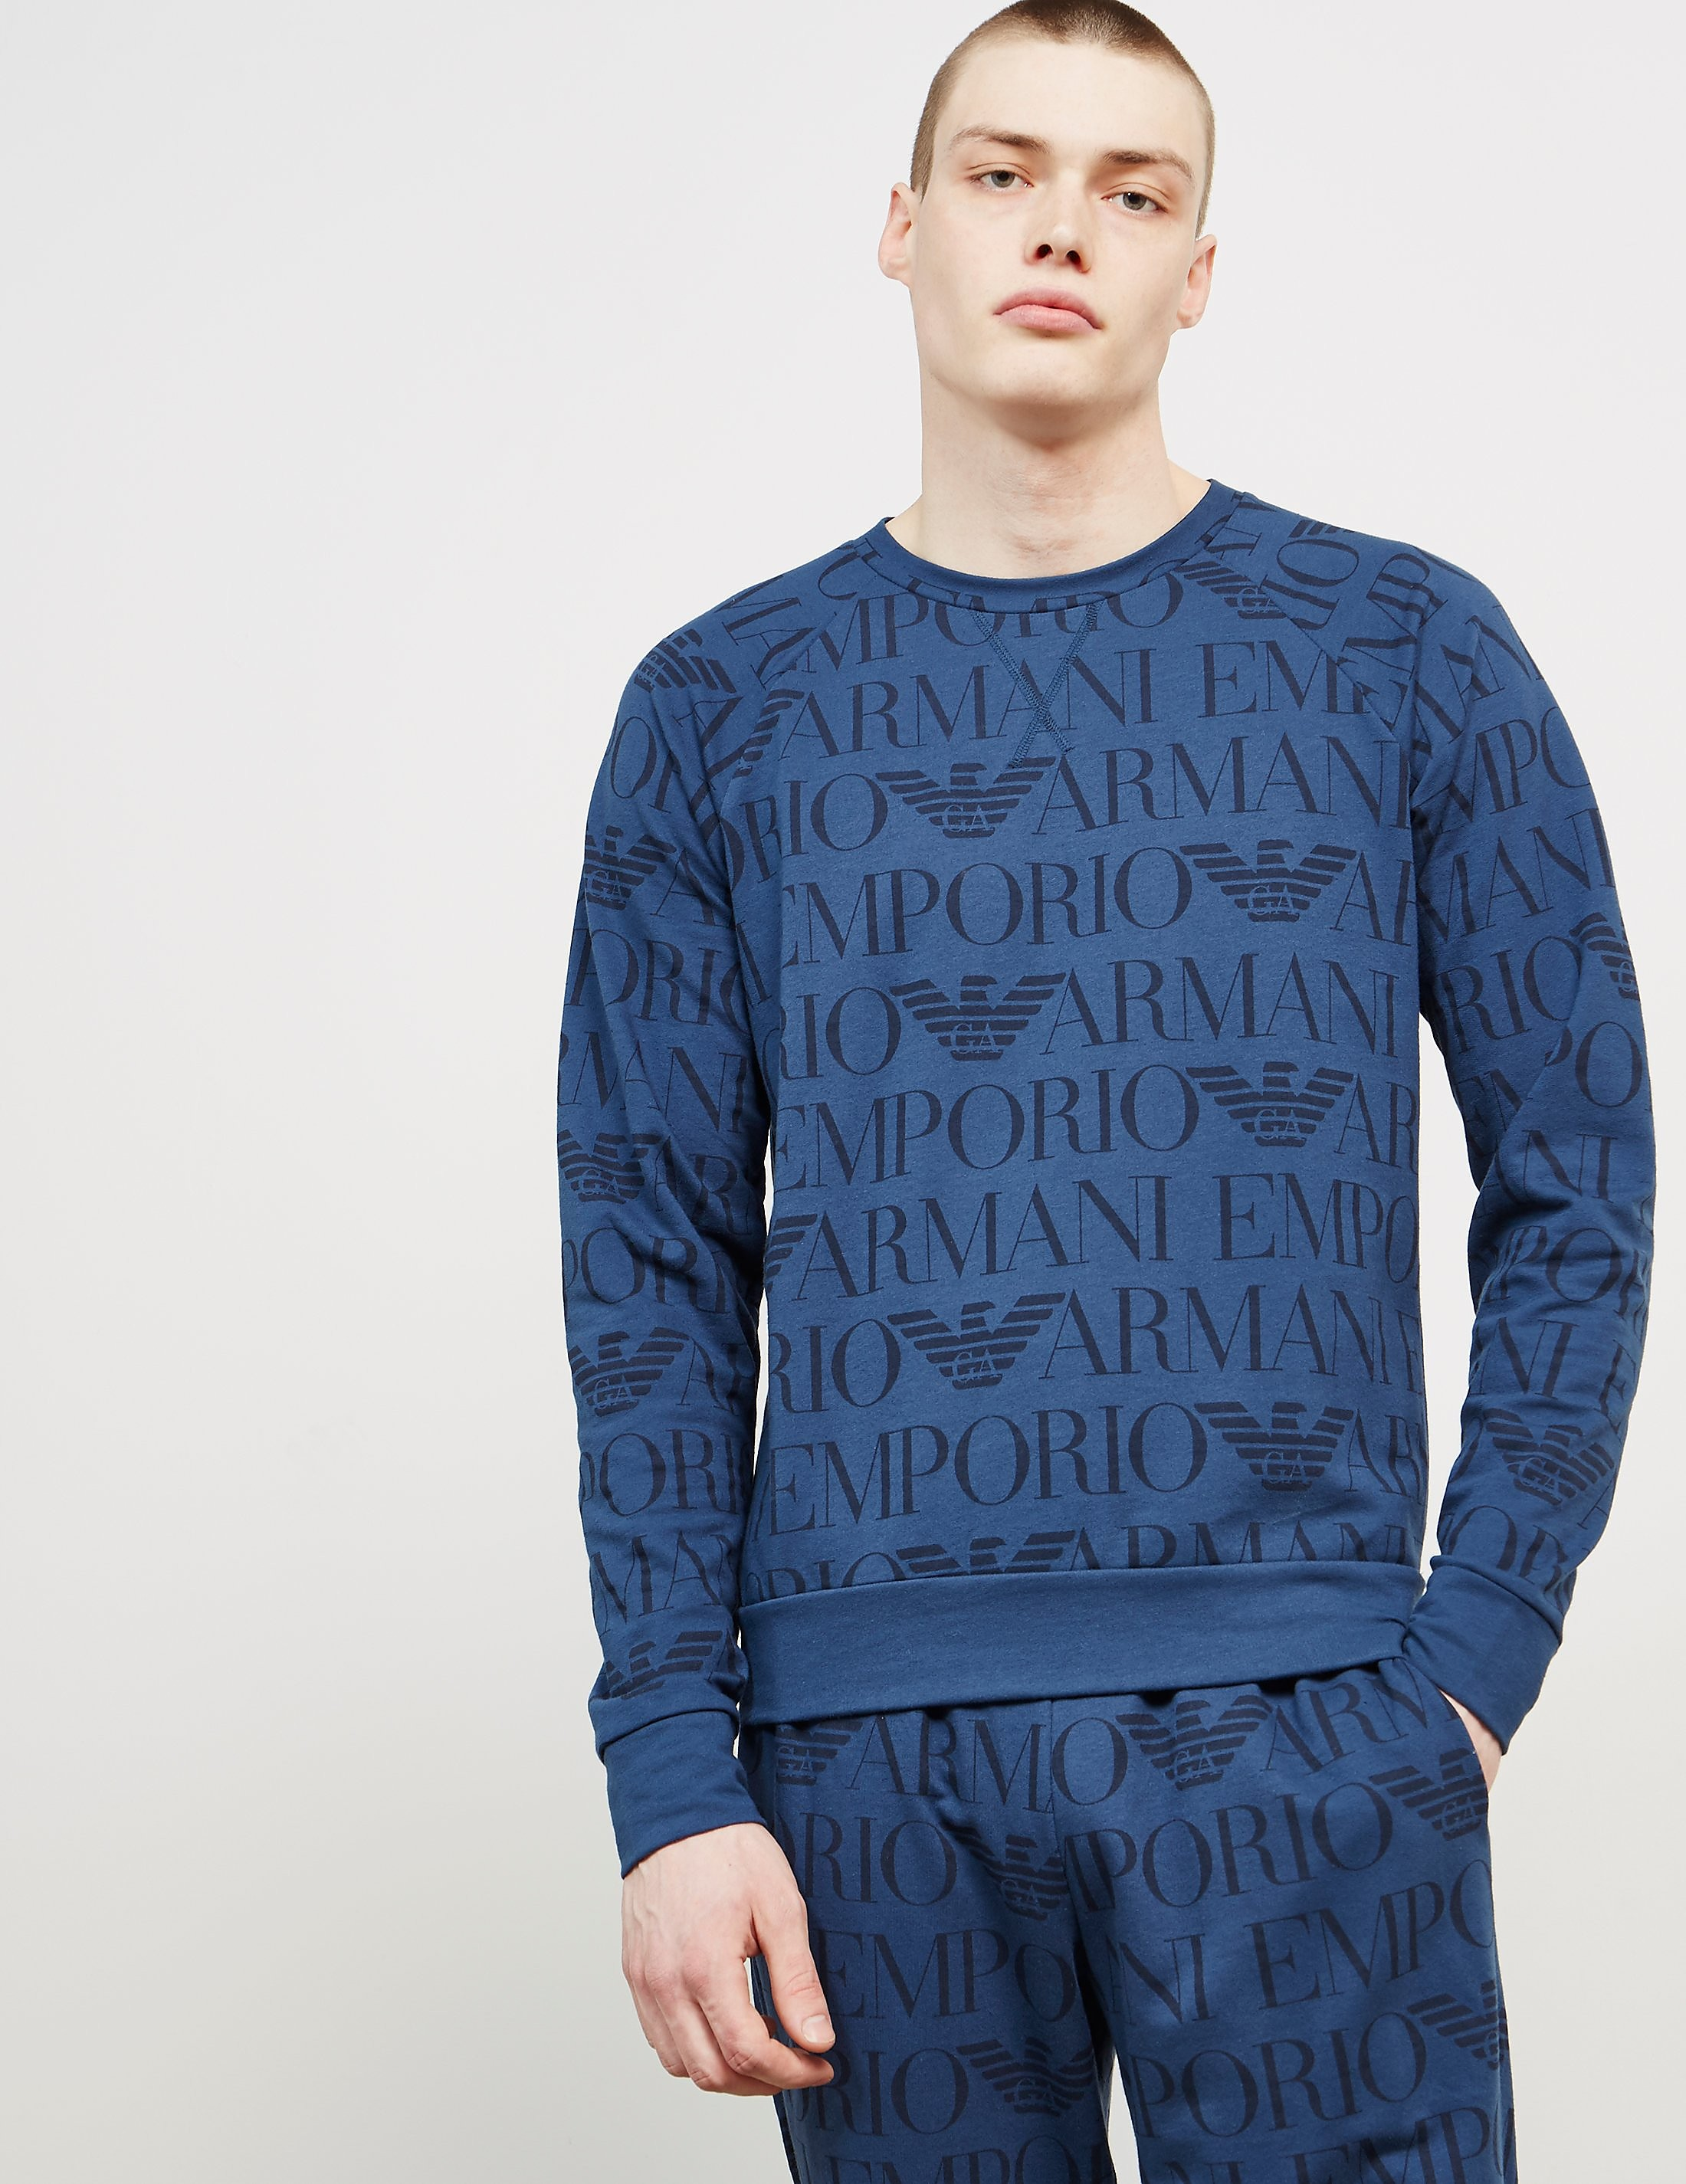 Emporio Armani All Over Print Sweatshirt